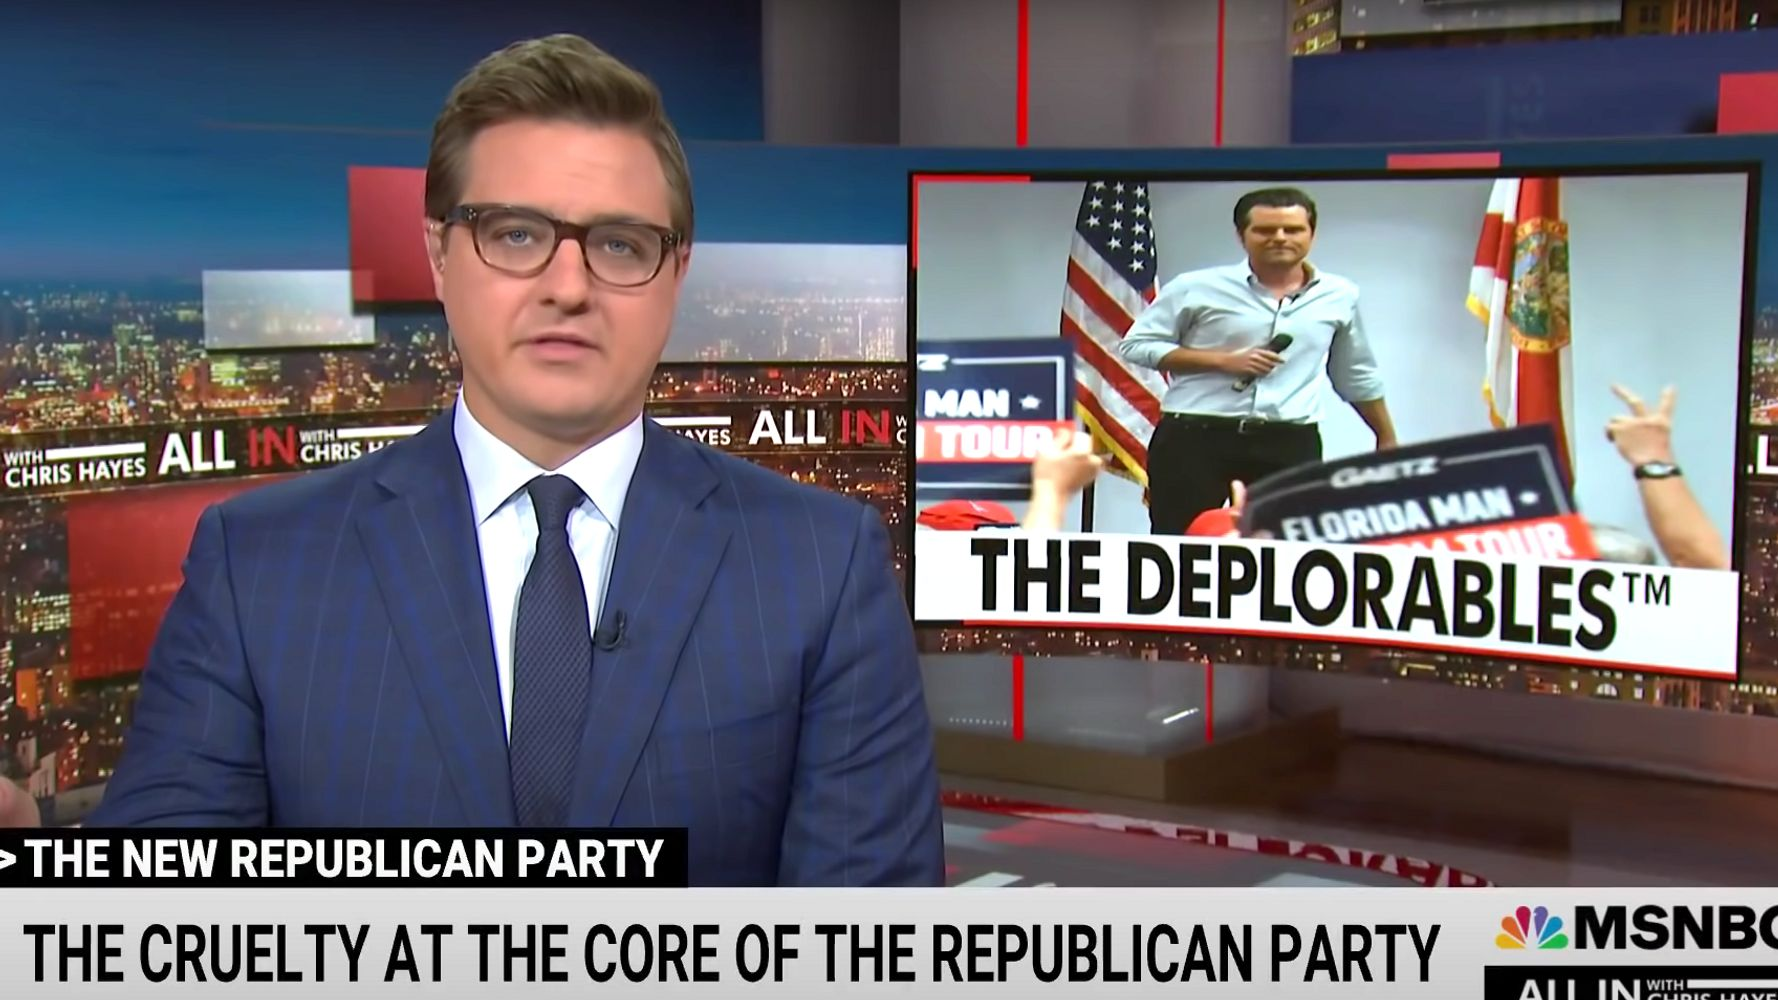 Chris Hayes Exposes The 'Cruelty At The Core' Of The GOP